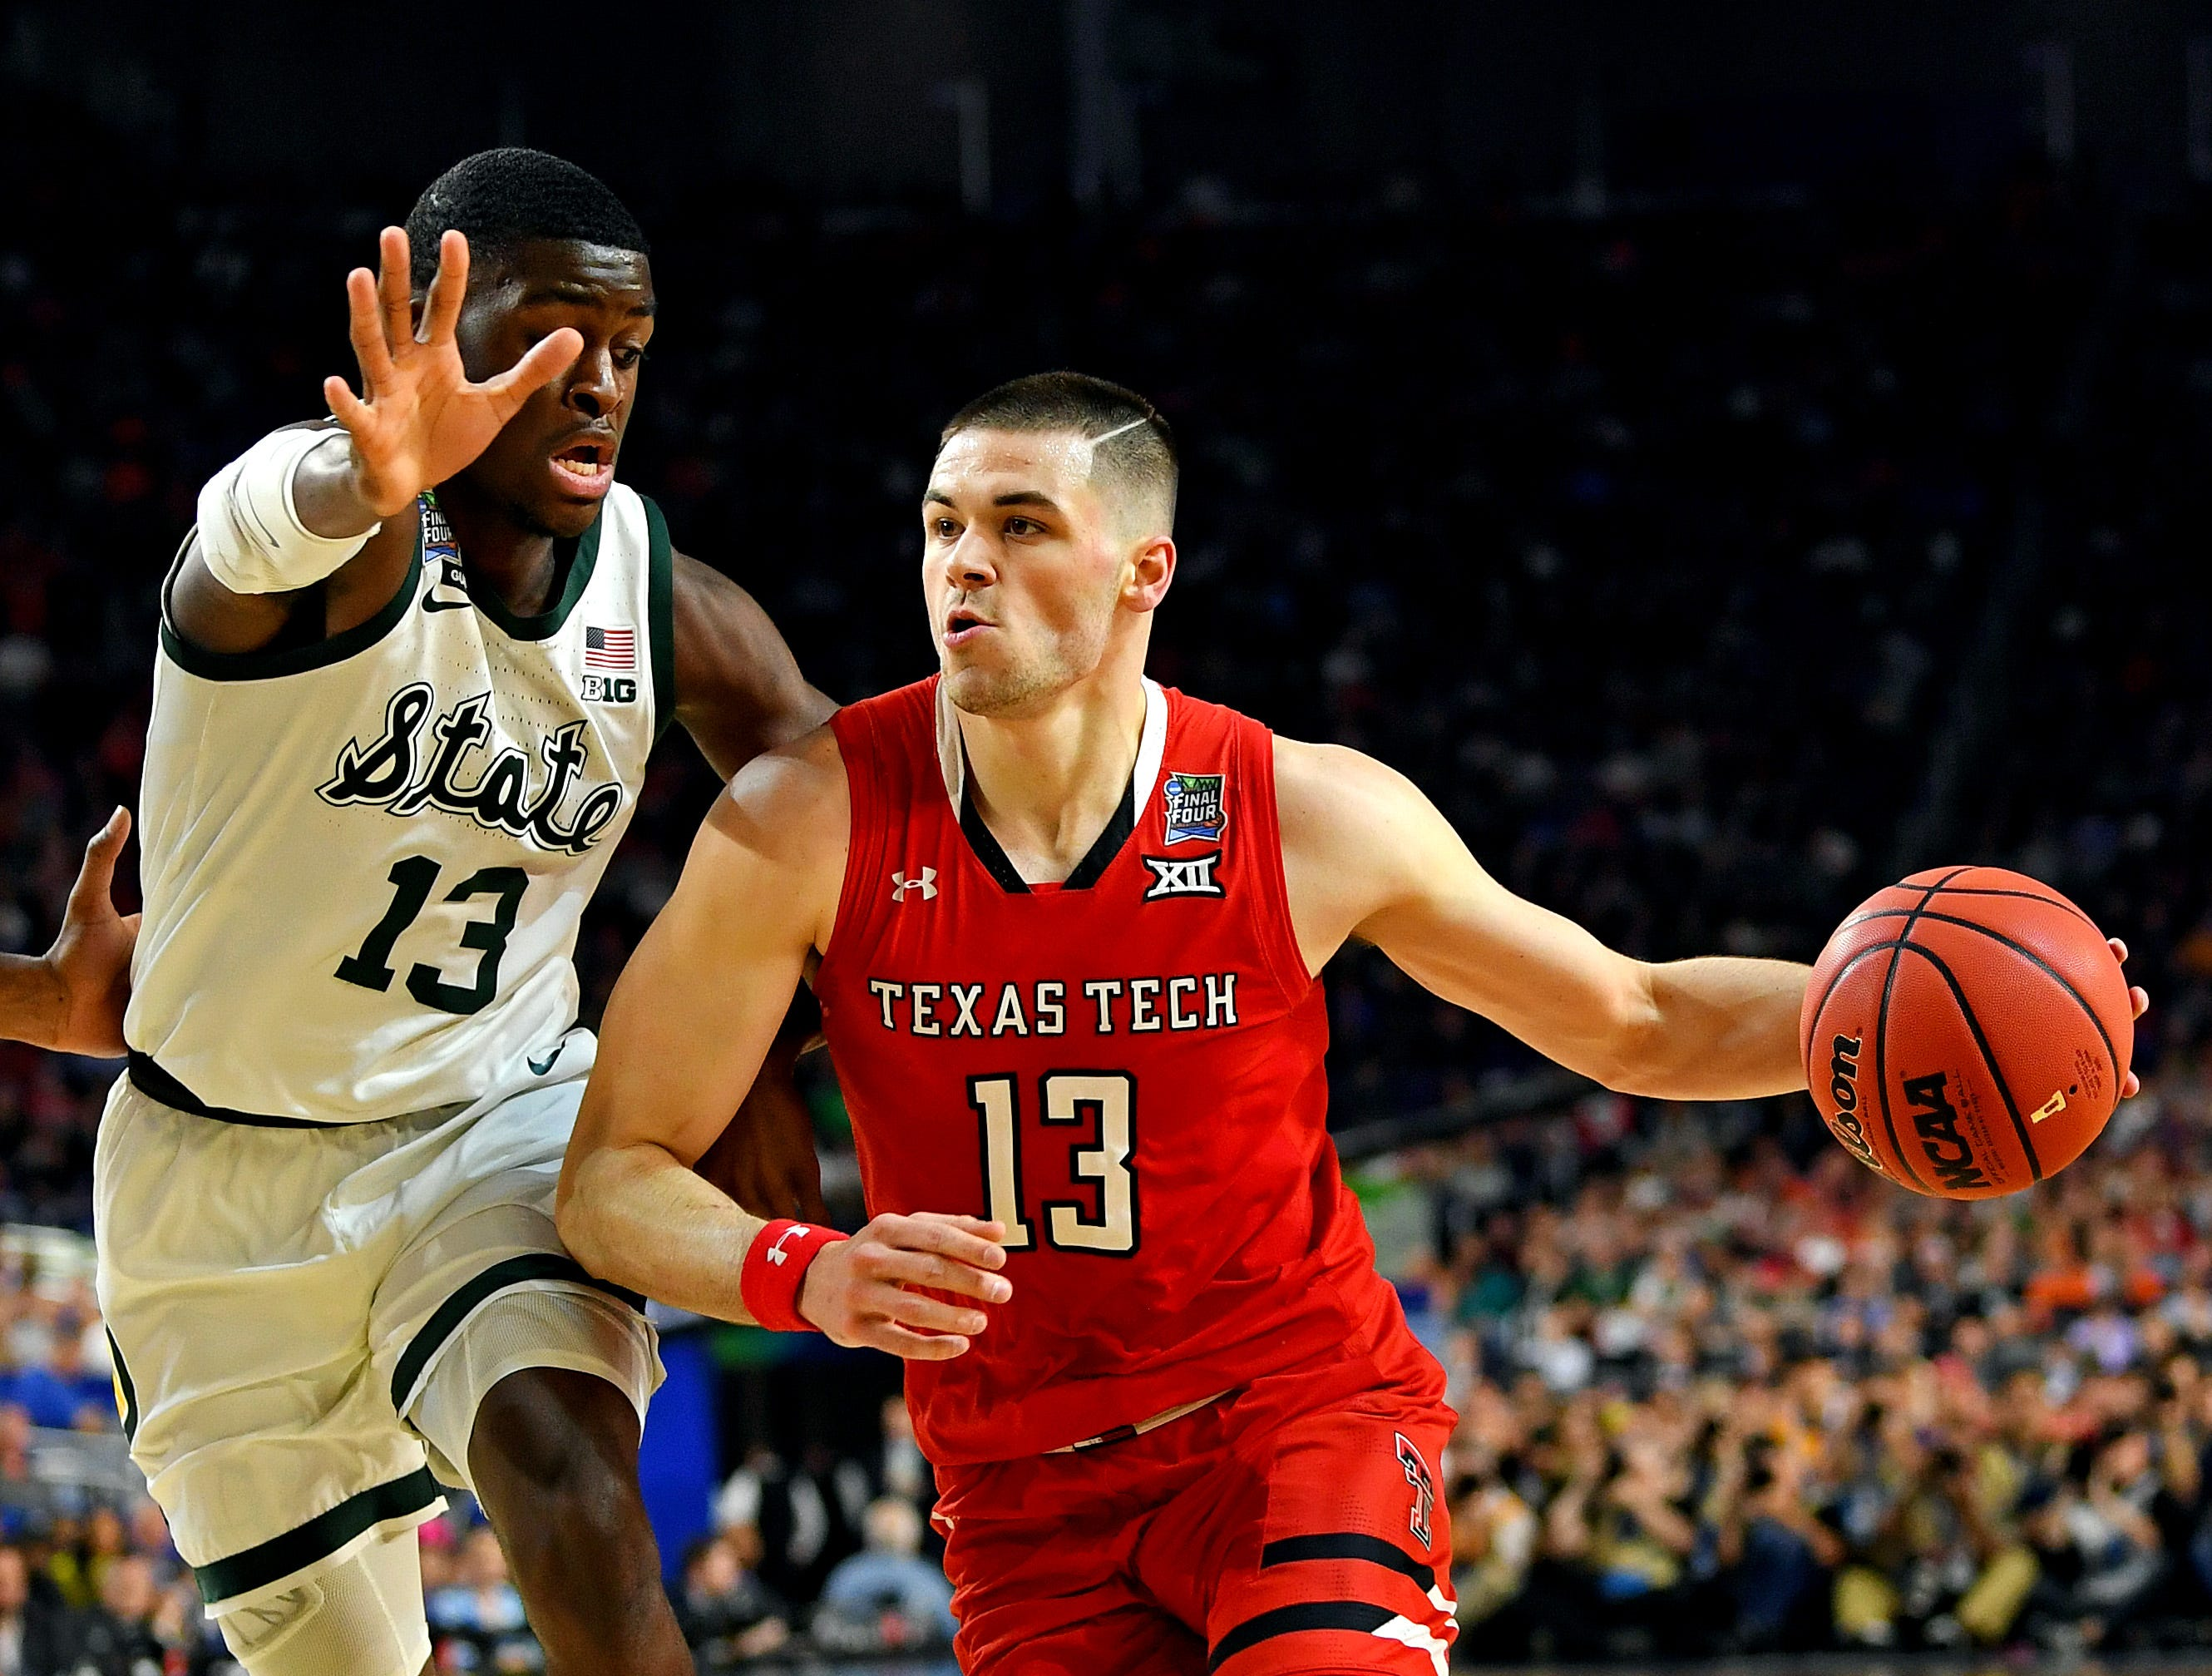 Apr 6, 2019; Minneapolis, MN, USA; Texas Tech Red Raiders guard Matt Mooney (13) drives to the basket against Michigan State Spartans forward Gabe Brown (13) during the second half in the semifinals of the 2019 men's Final Four at US Bank Stadium. Mandatory Credit: Bob Donnan-USA TODAY Sports